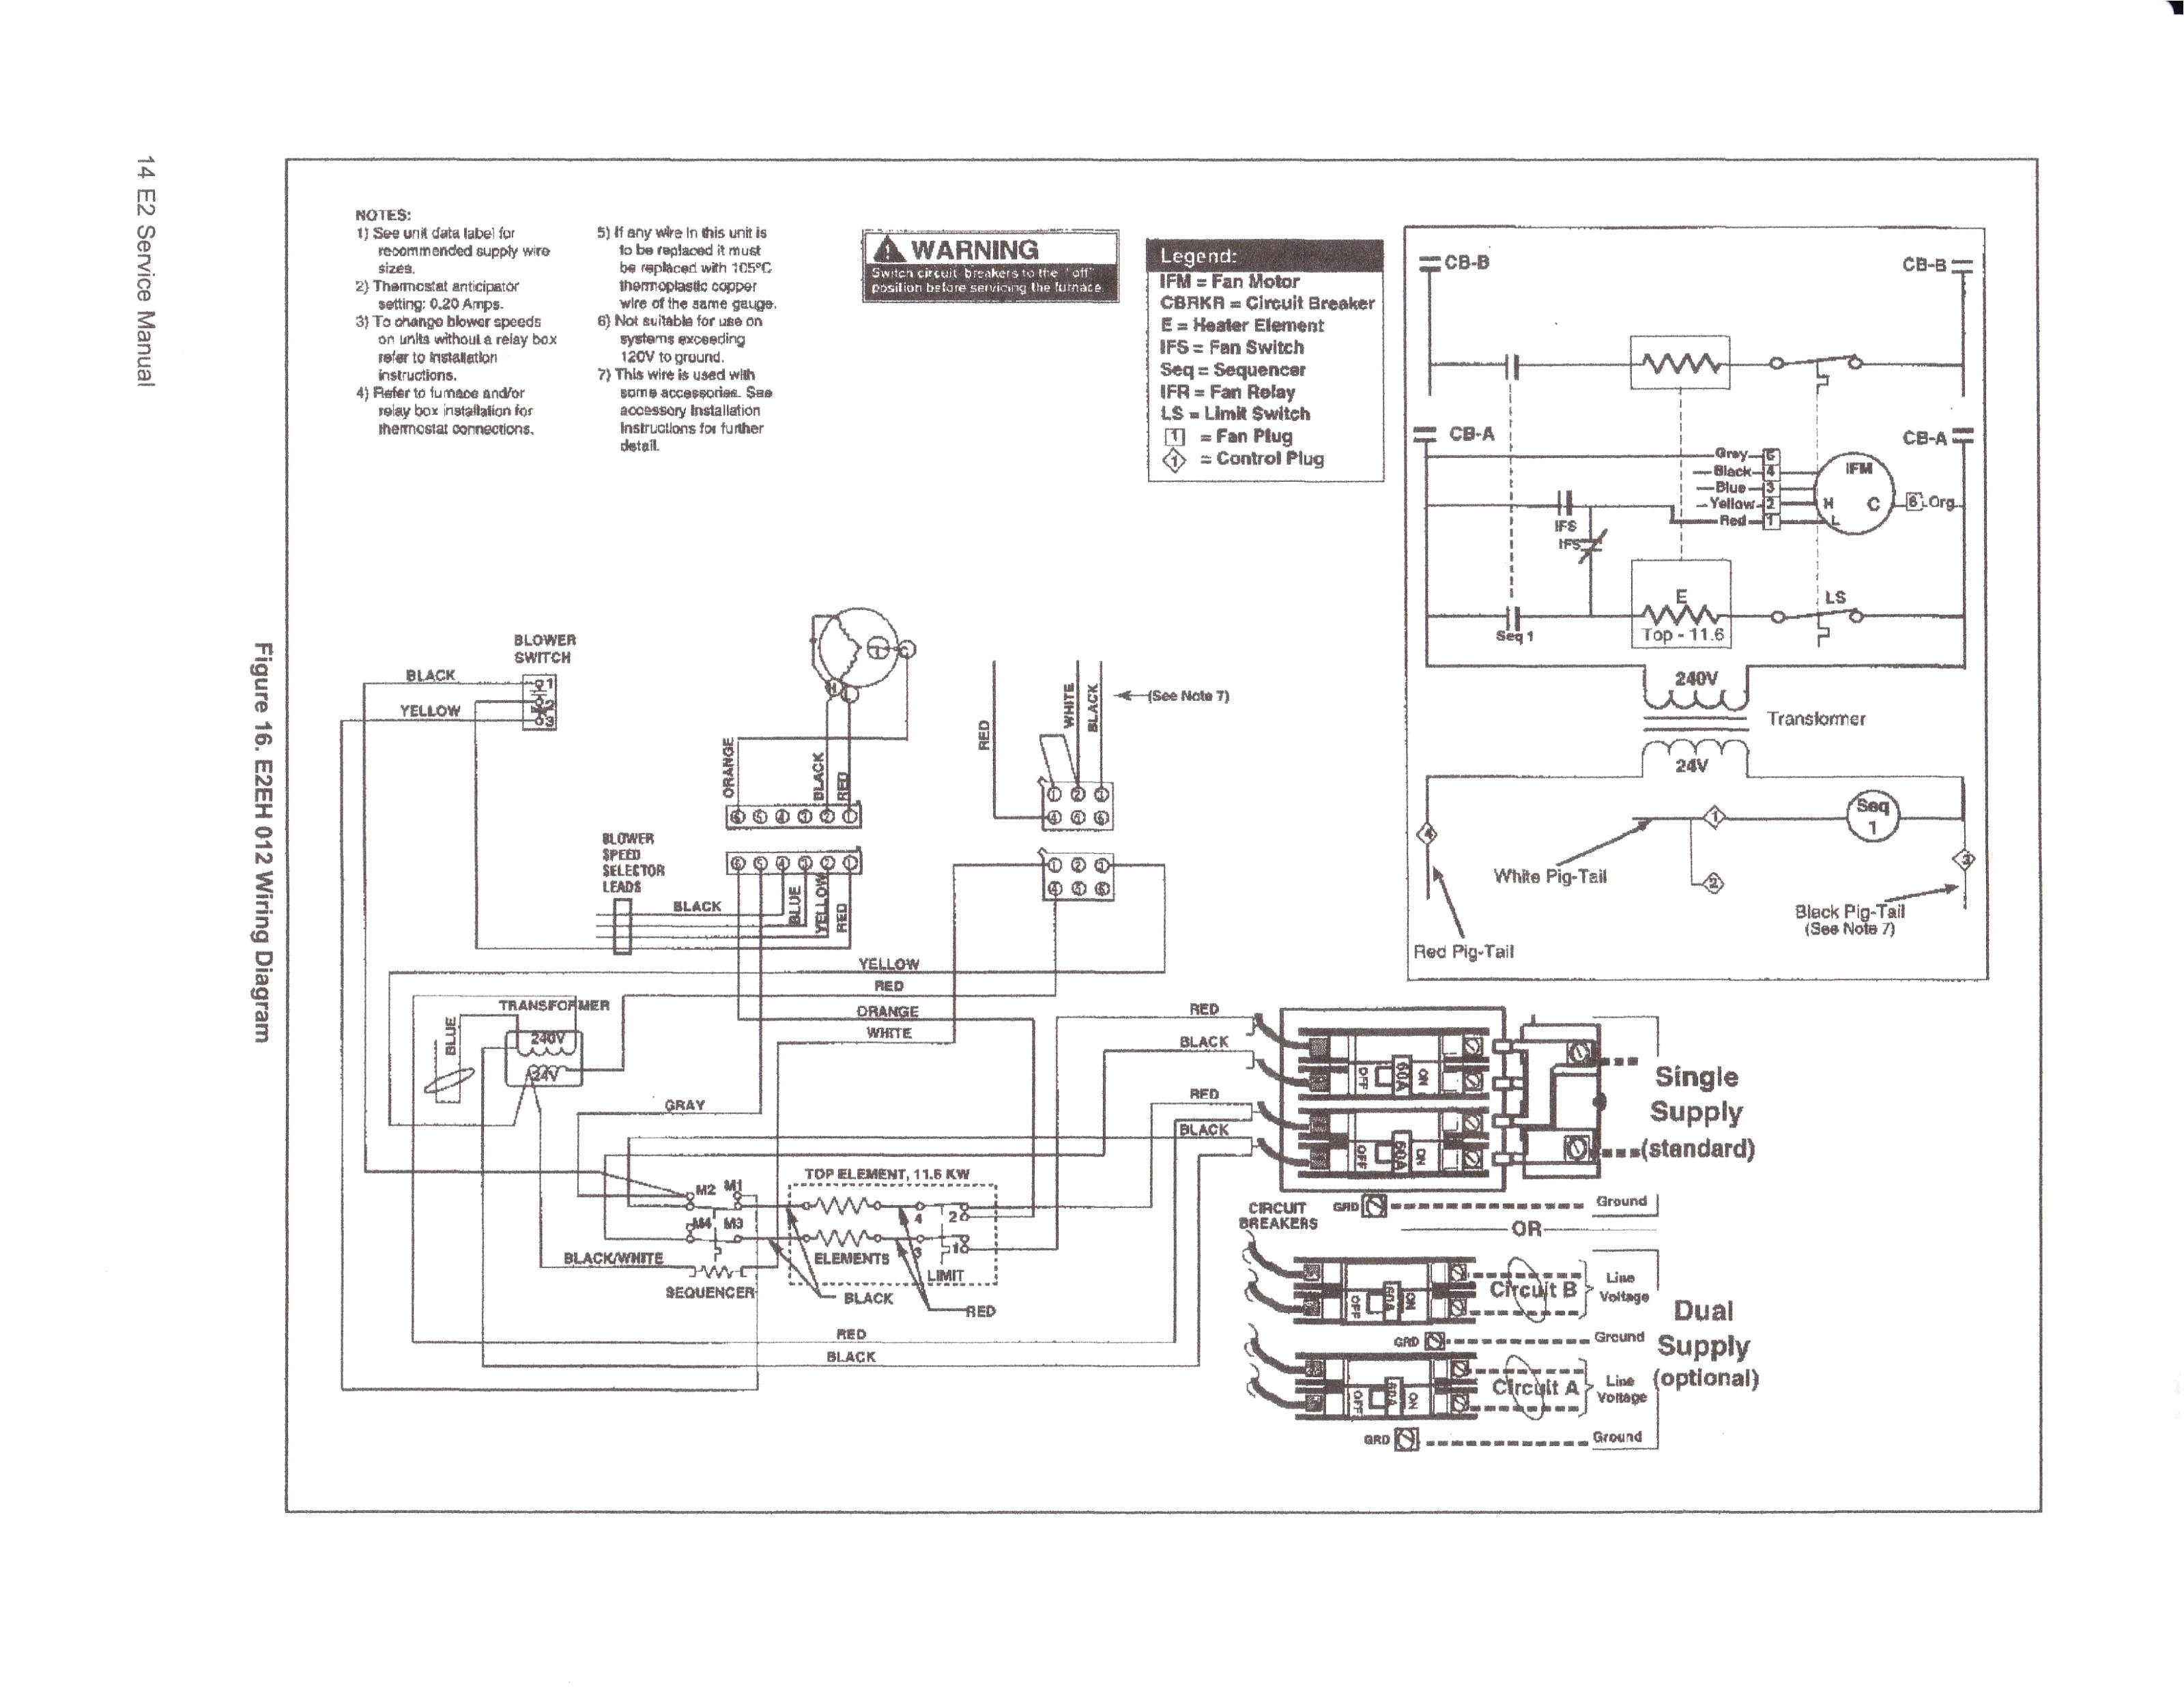 arcoaire air conditioner wiring diagram wiring diagram name